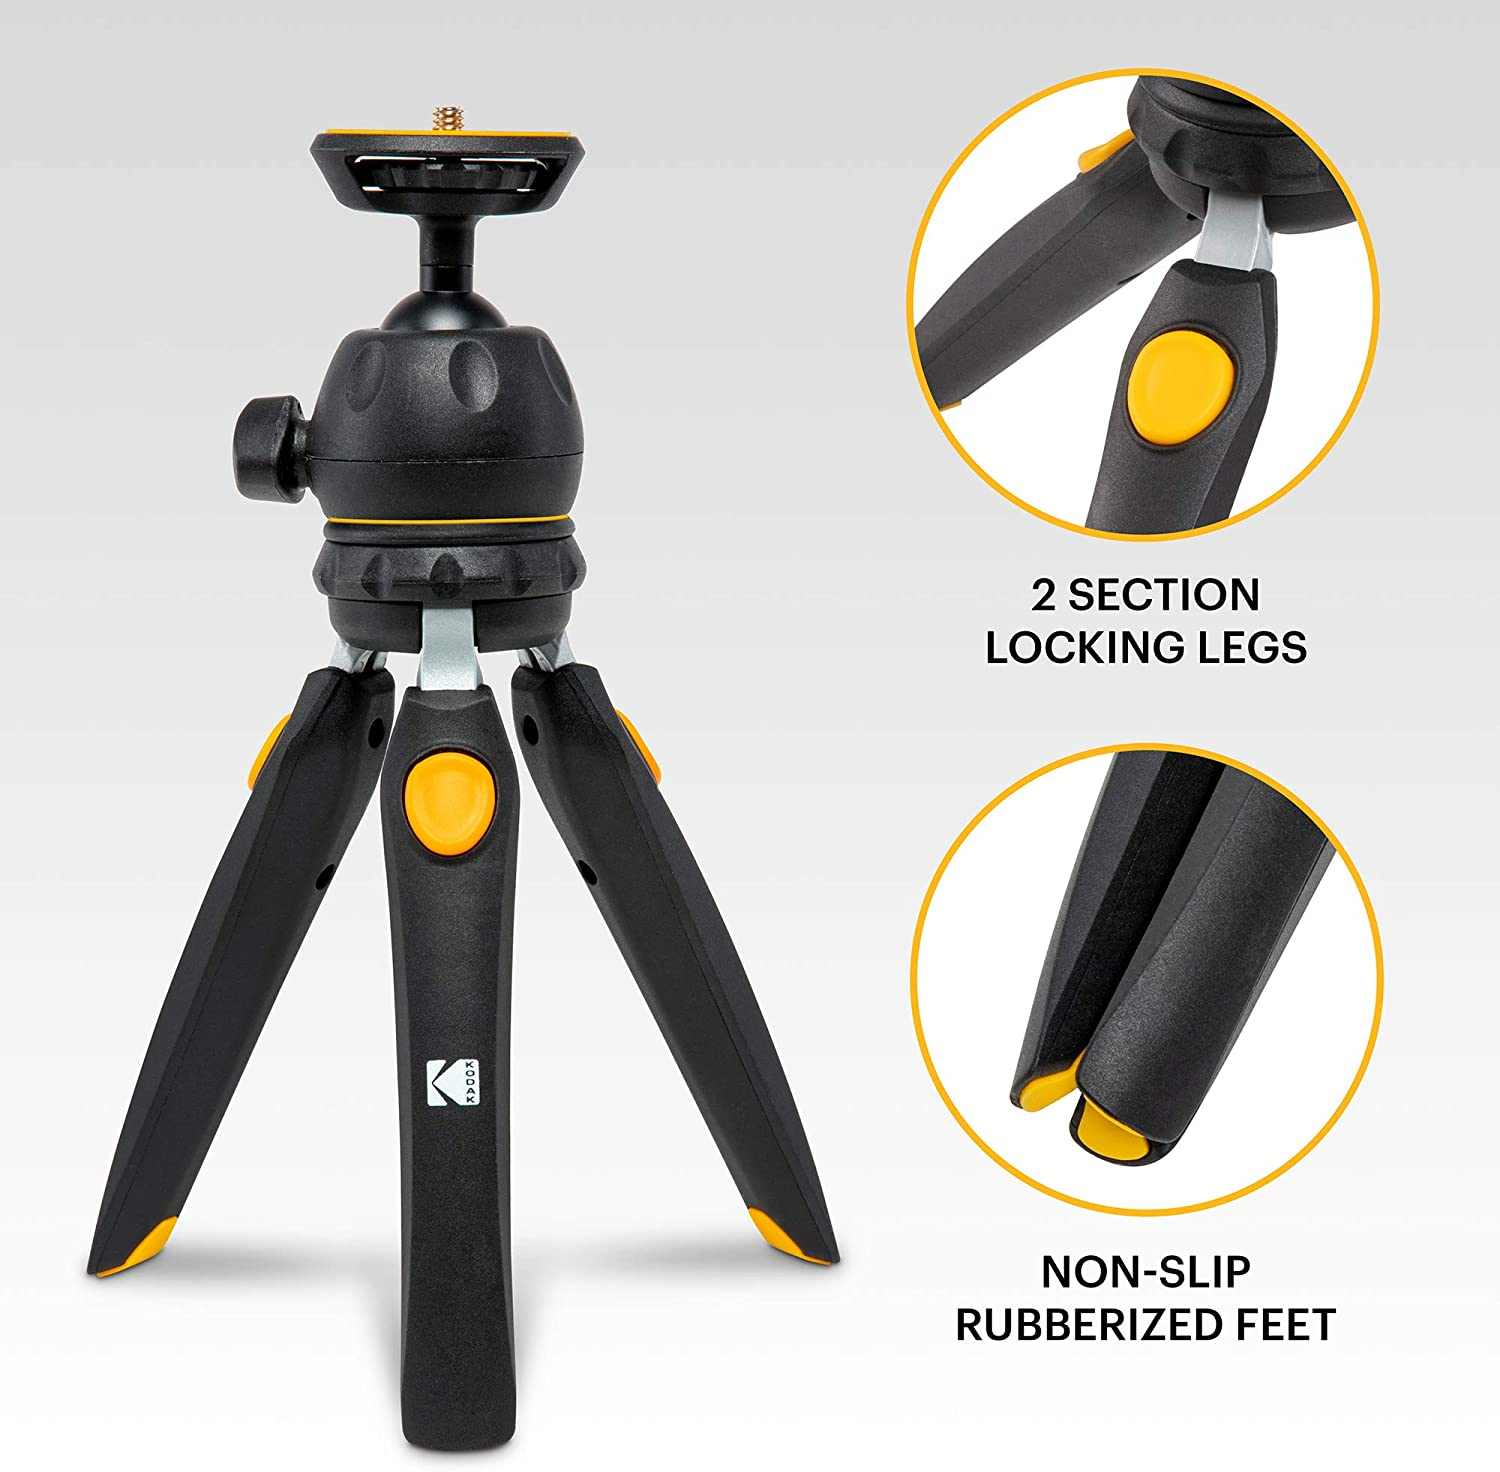 """Compact 9/"""" Tabletop Tripod Converts to 11/"""" Selfie Stick Rubber Feet Smartphone /& Action Camera Adapters KODAK PhotoGear Mini Adjustable Tripod with 360/° Ball Head 5-Position Legs E-Guide Included"""